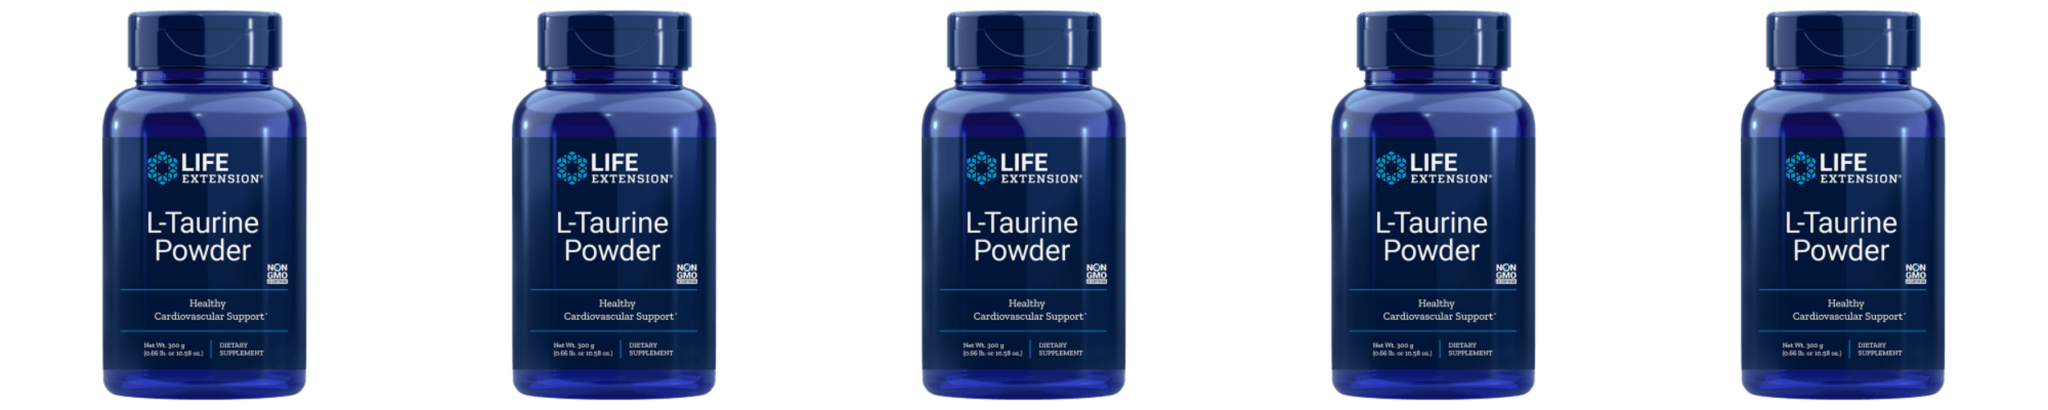 Life Extension L-Taurine Powder, 300 Grams, 5-pack